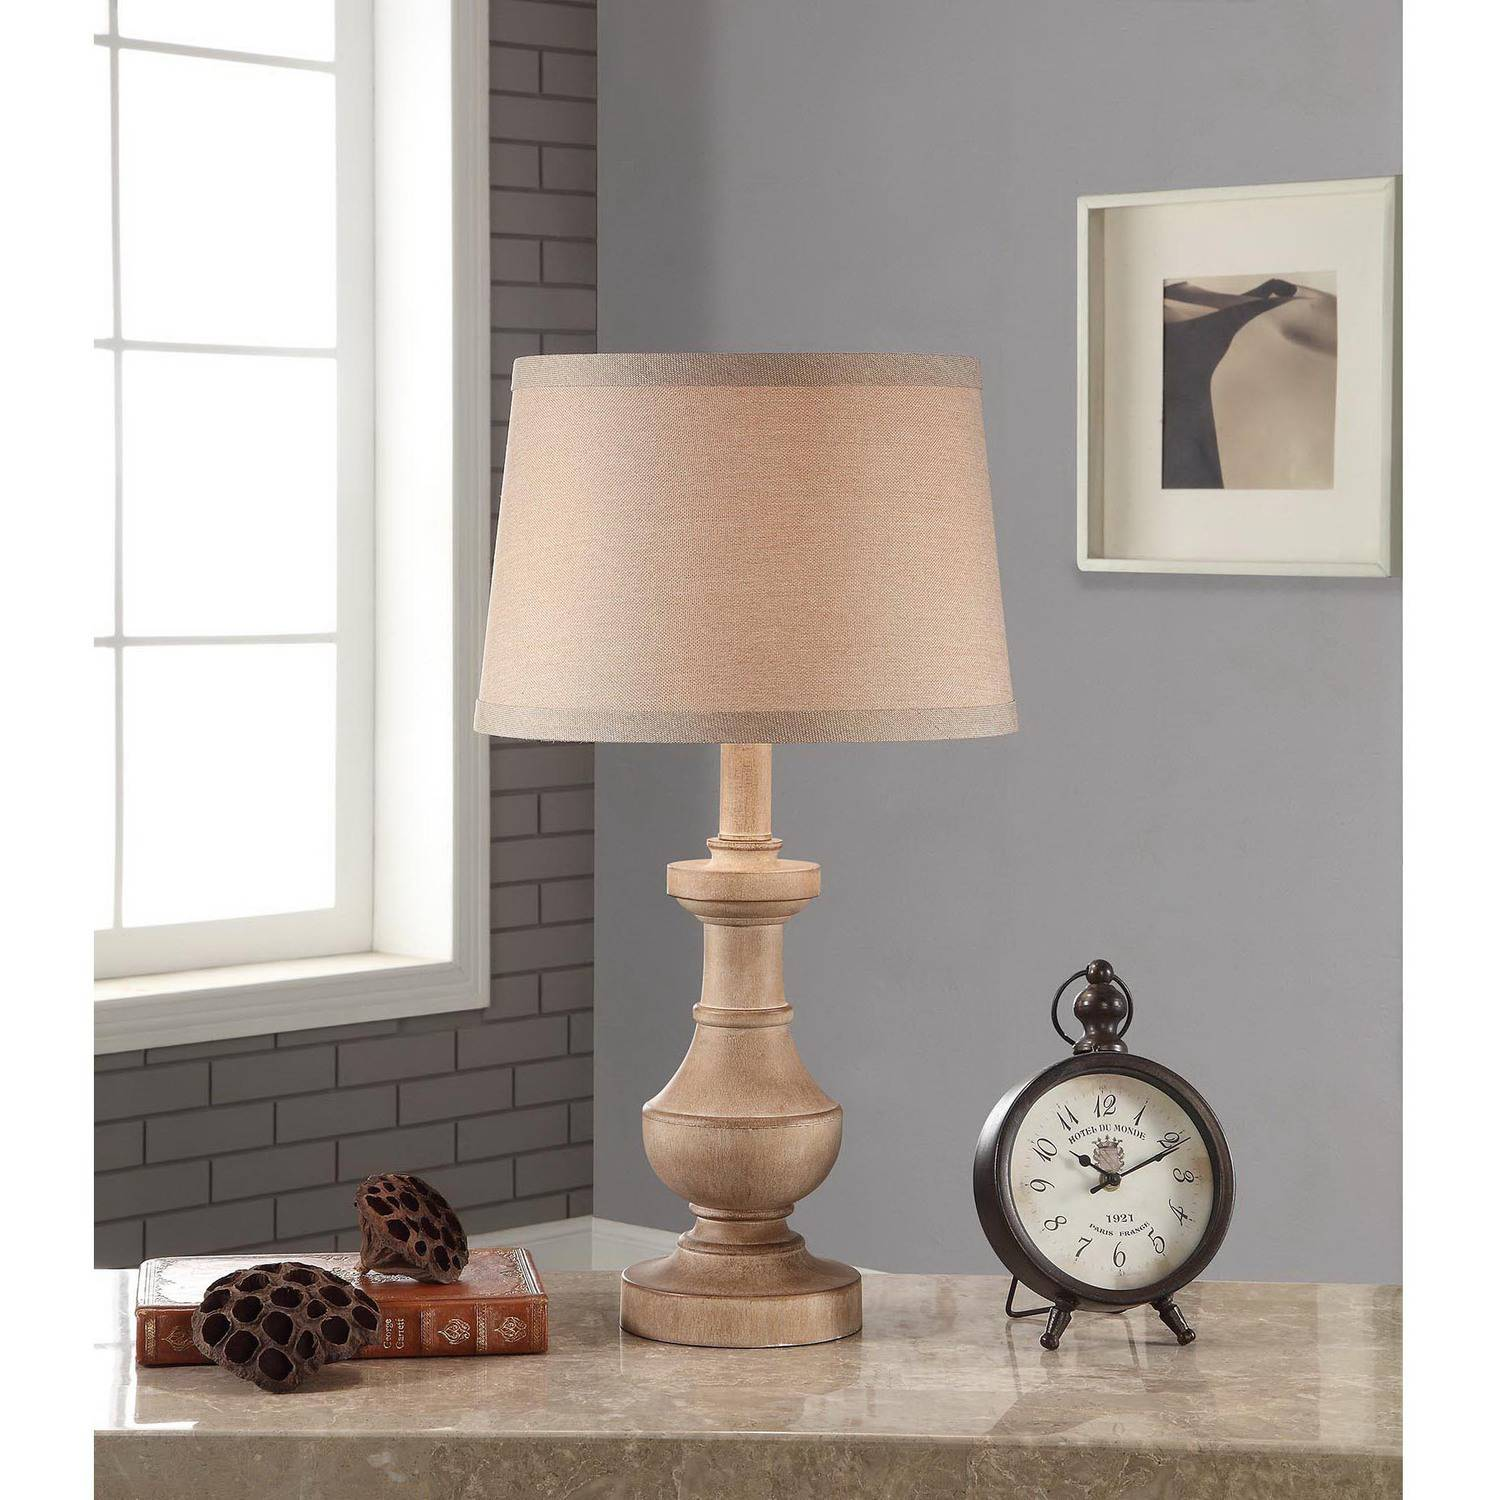 Better Homes And Gardens Rustic Table Lamp White Washed Wood Finish